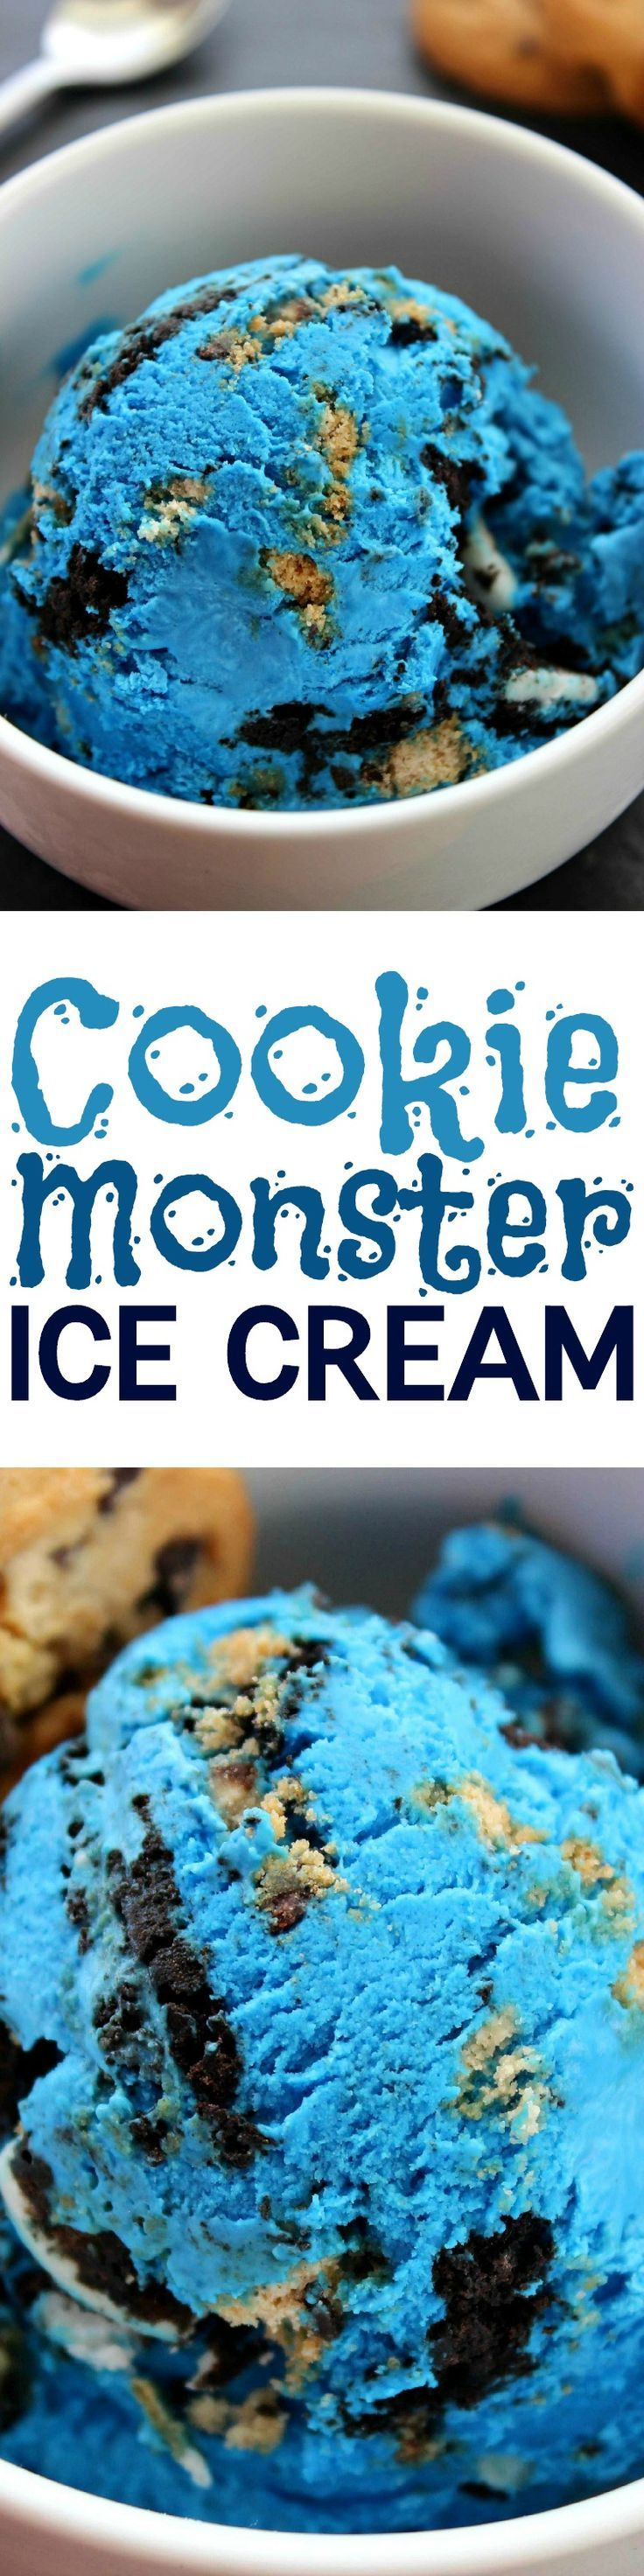 Creamy (no churn!) vanilla ice cream loaded with 2 different kinds of cookies. A cookie lover's dream come true!